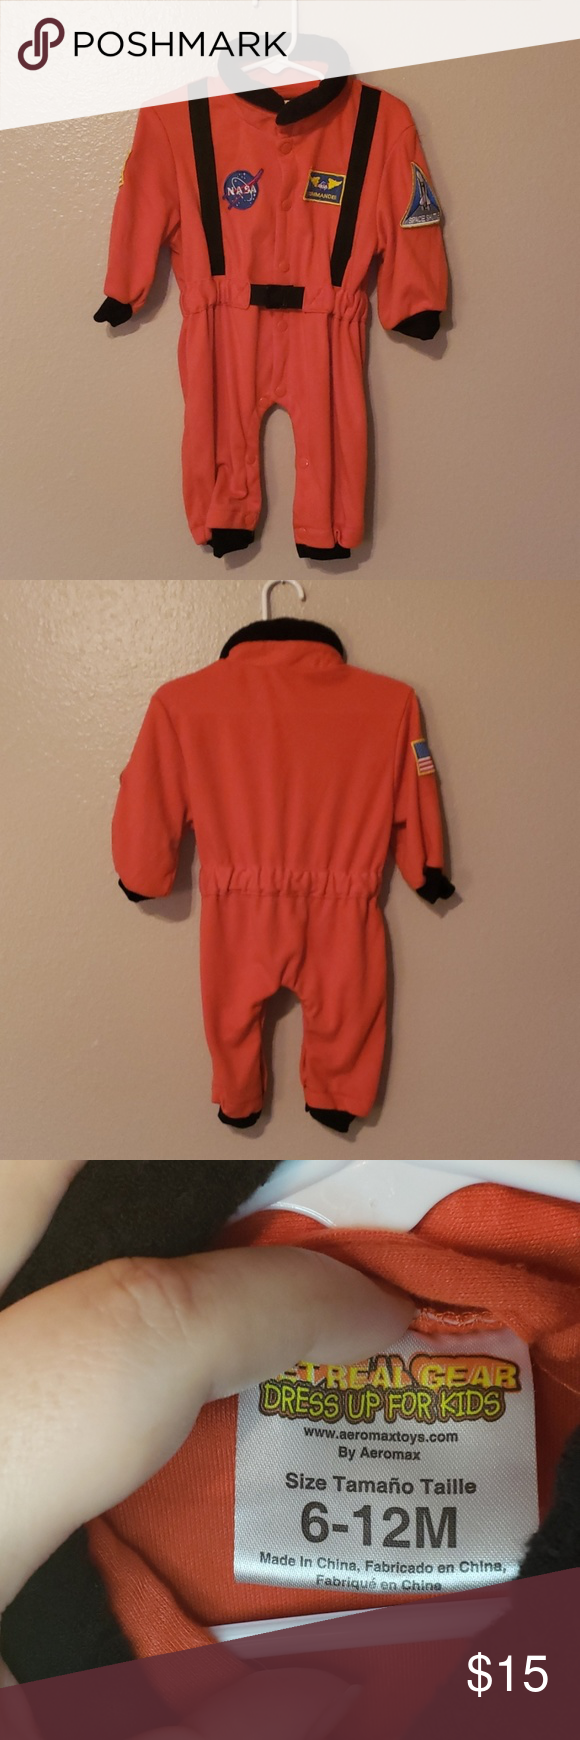 Baby costume Infant 612 month astronaut costume